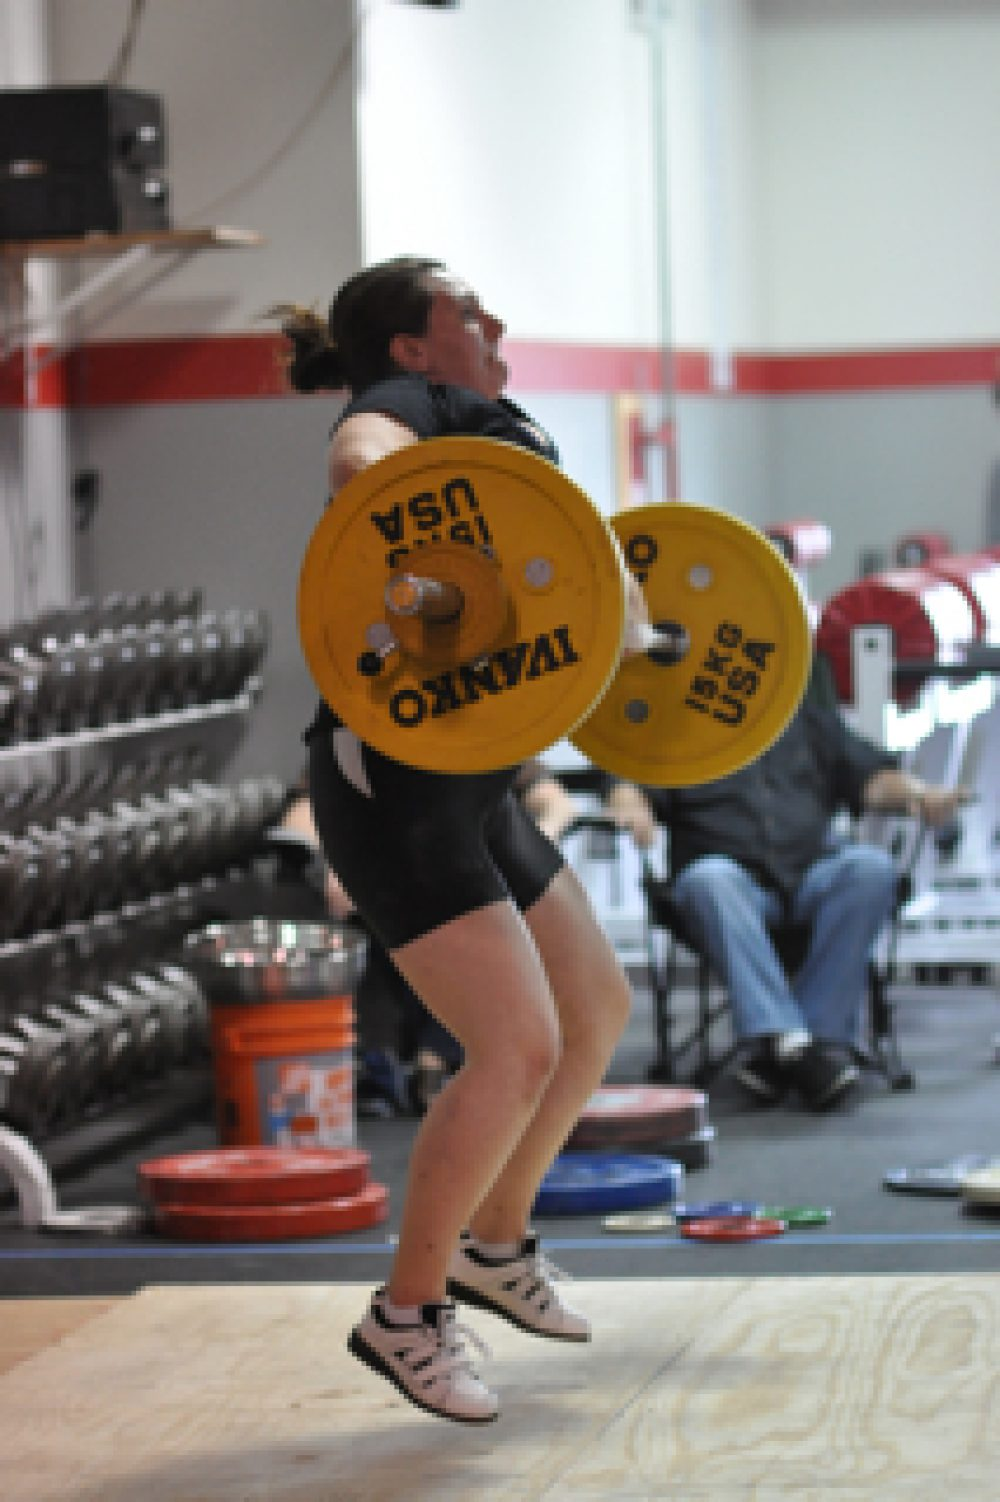 Weightlifting vs Powerlifting